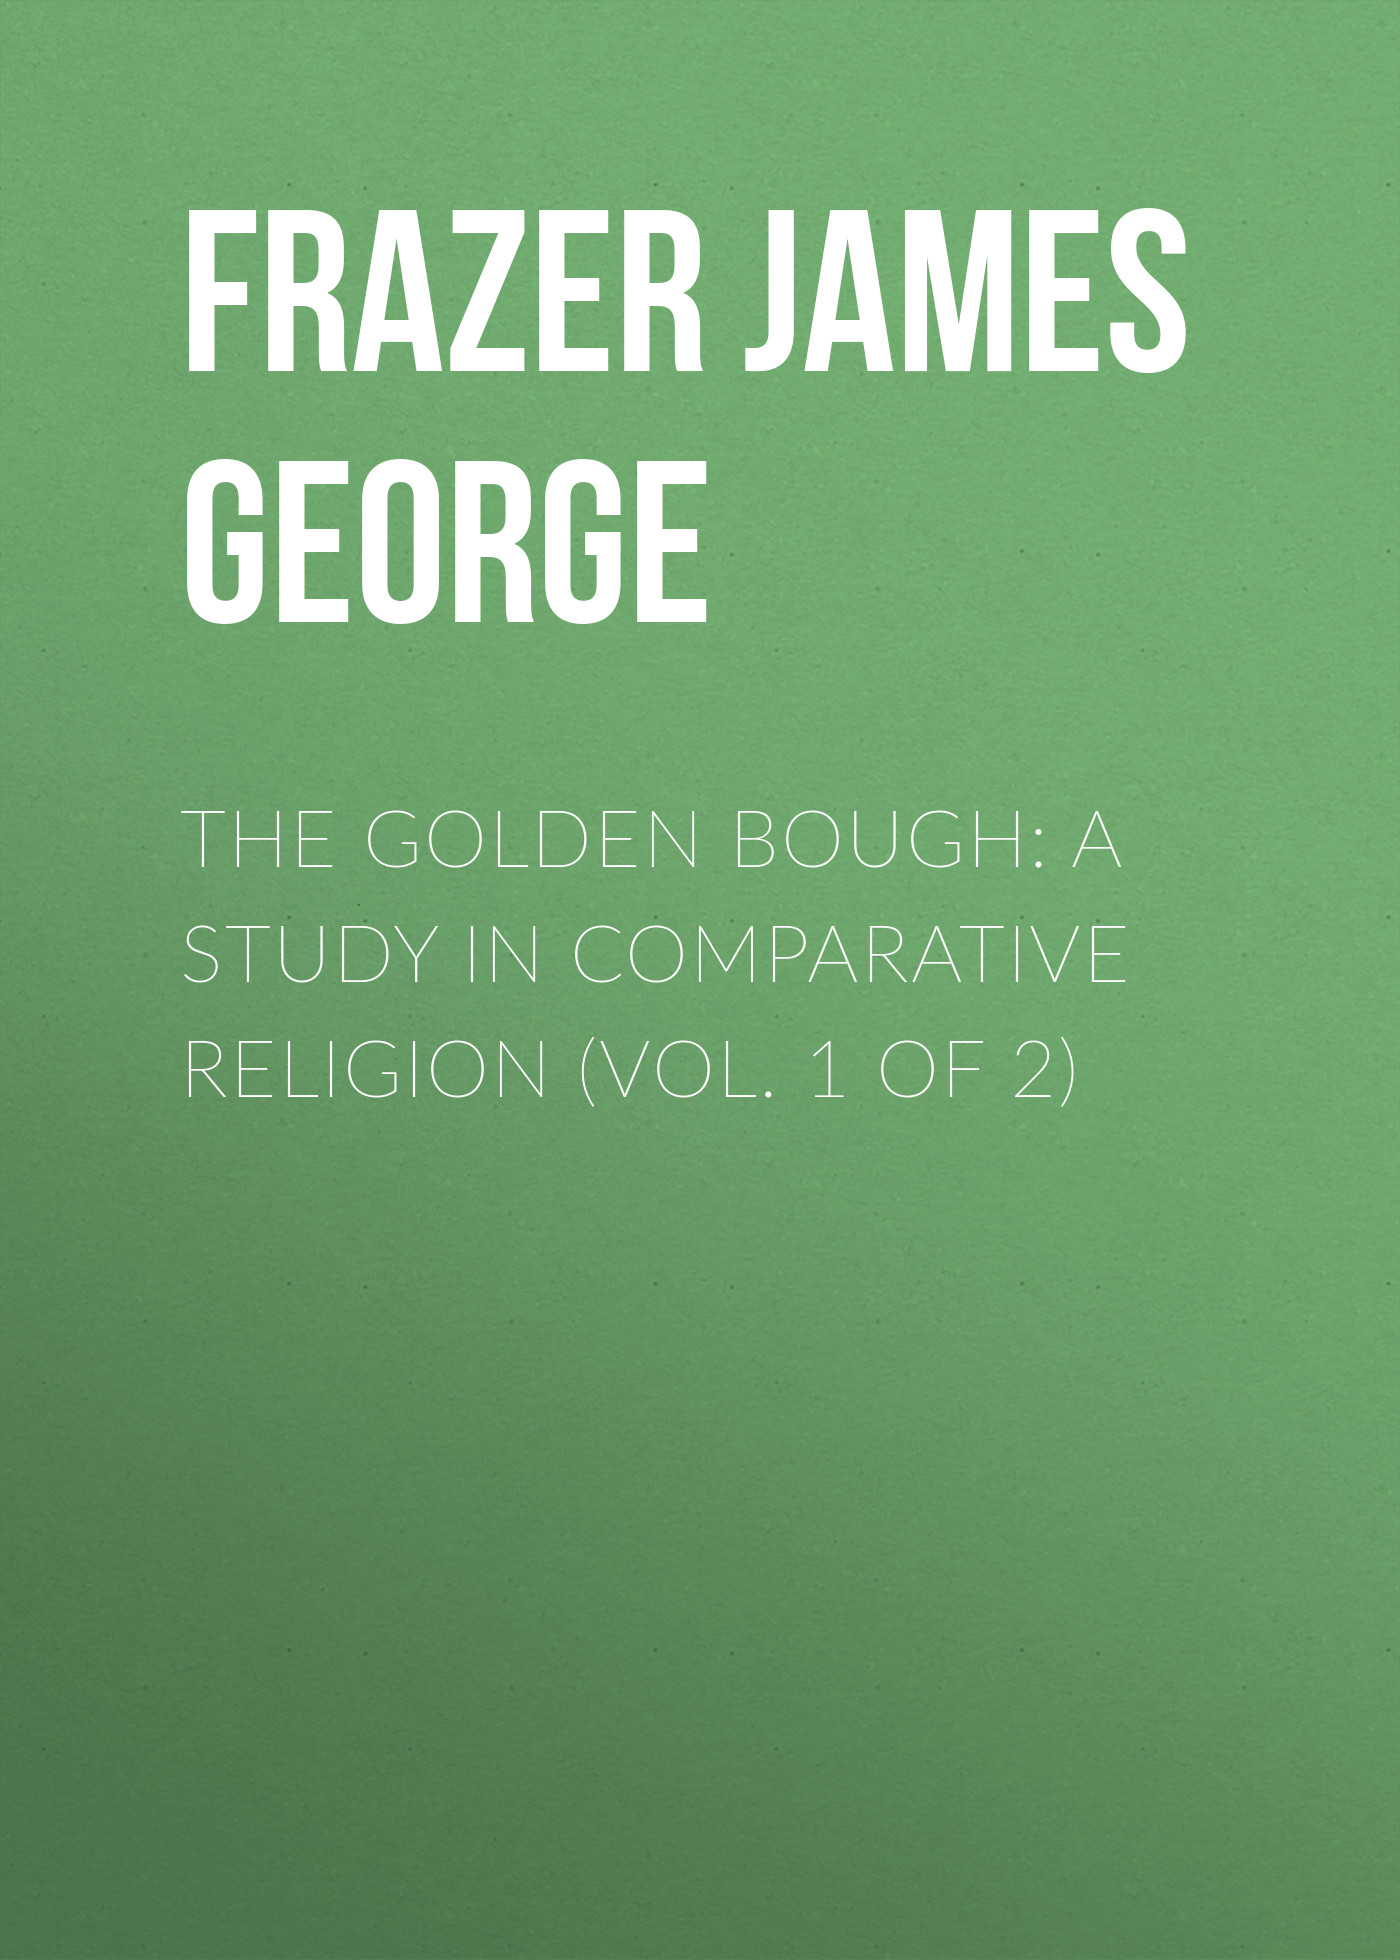 Frazer James George The Golden Bough: A Study in Comparative Religion (Vol. 1 of 2) laboratories in engineering education a comparative study